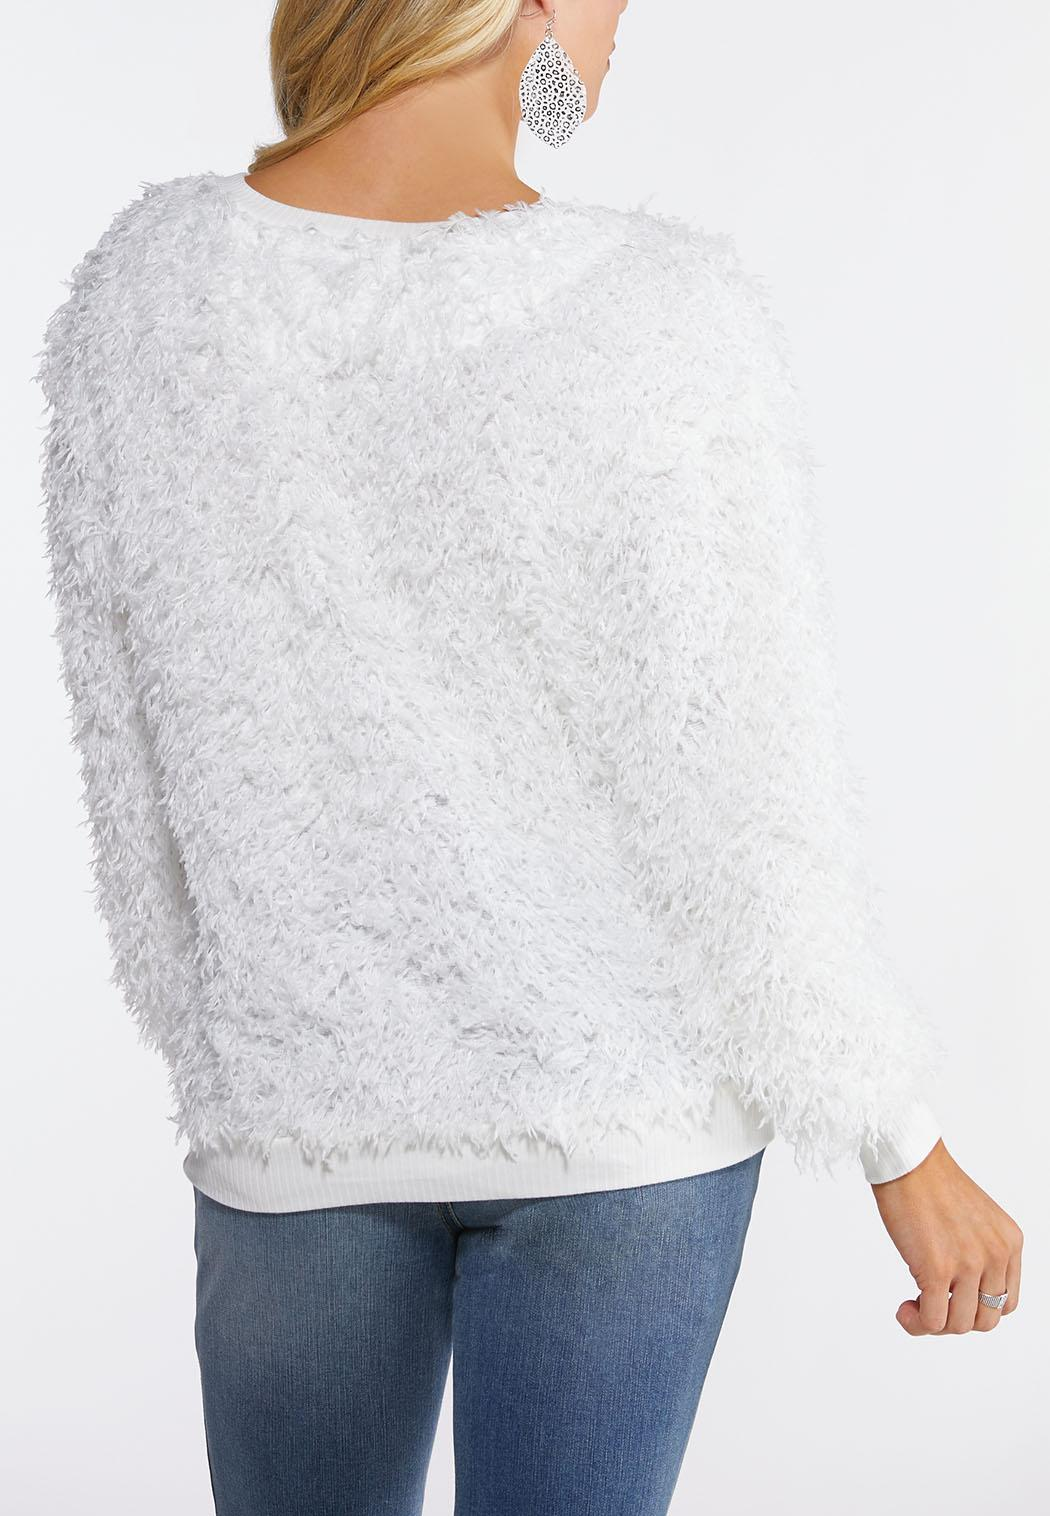 Fluffy Ivory Scoop Neck Top (Item #44109417)